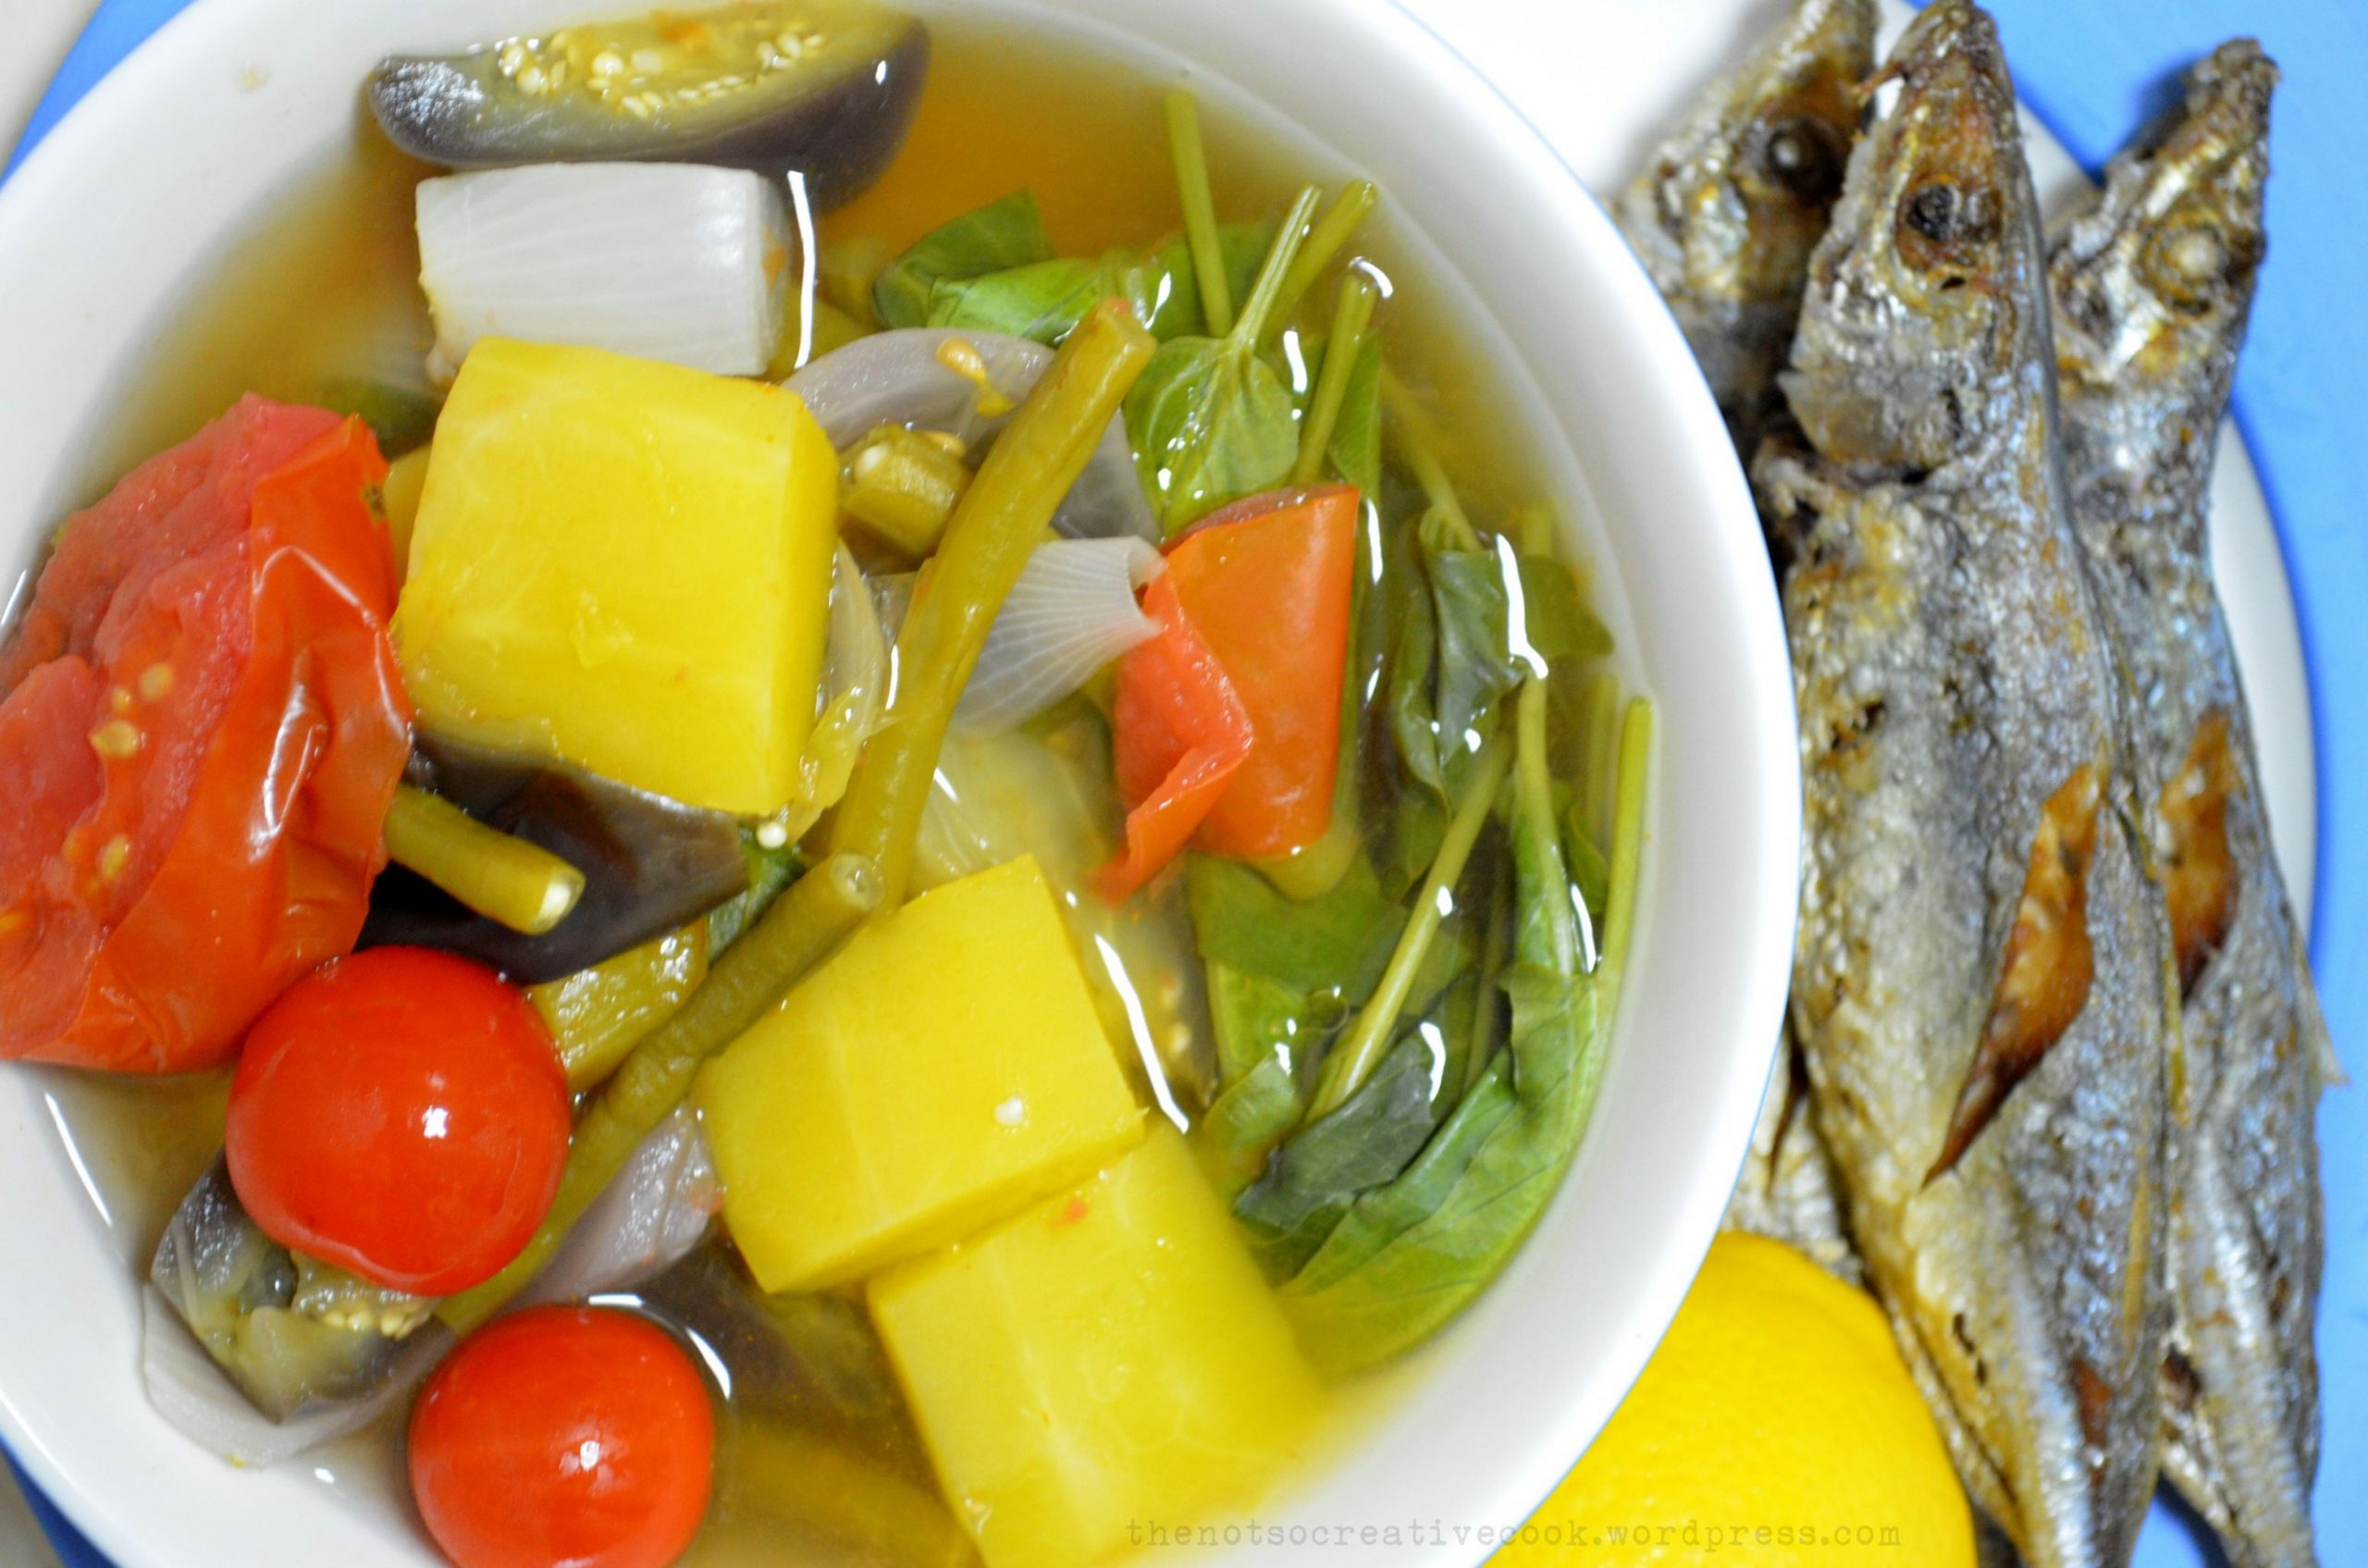 BULANGLANG: A Filipino Vegetable Dish - The Not So Creative Cook - Vegetable Recipes Easy Pinoy